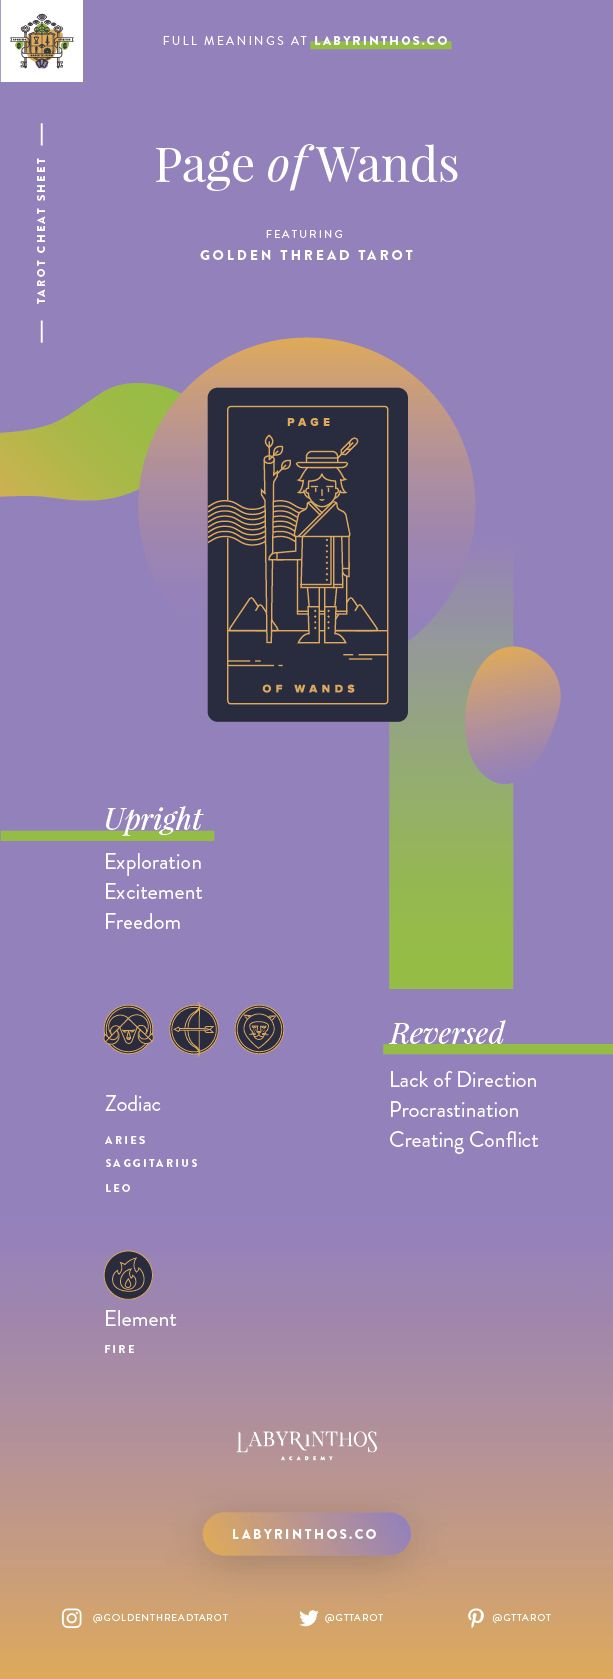 Page of Wands Meaning - Tarot Card Meanings Cheat Sheet. Art from Golden Thread Tarot.